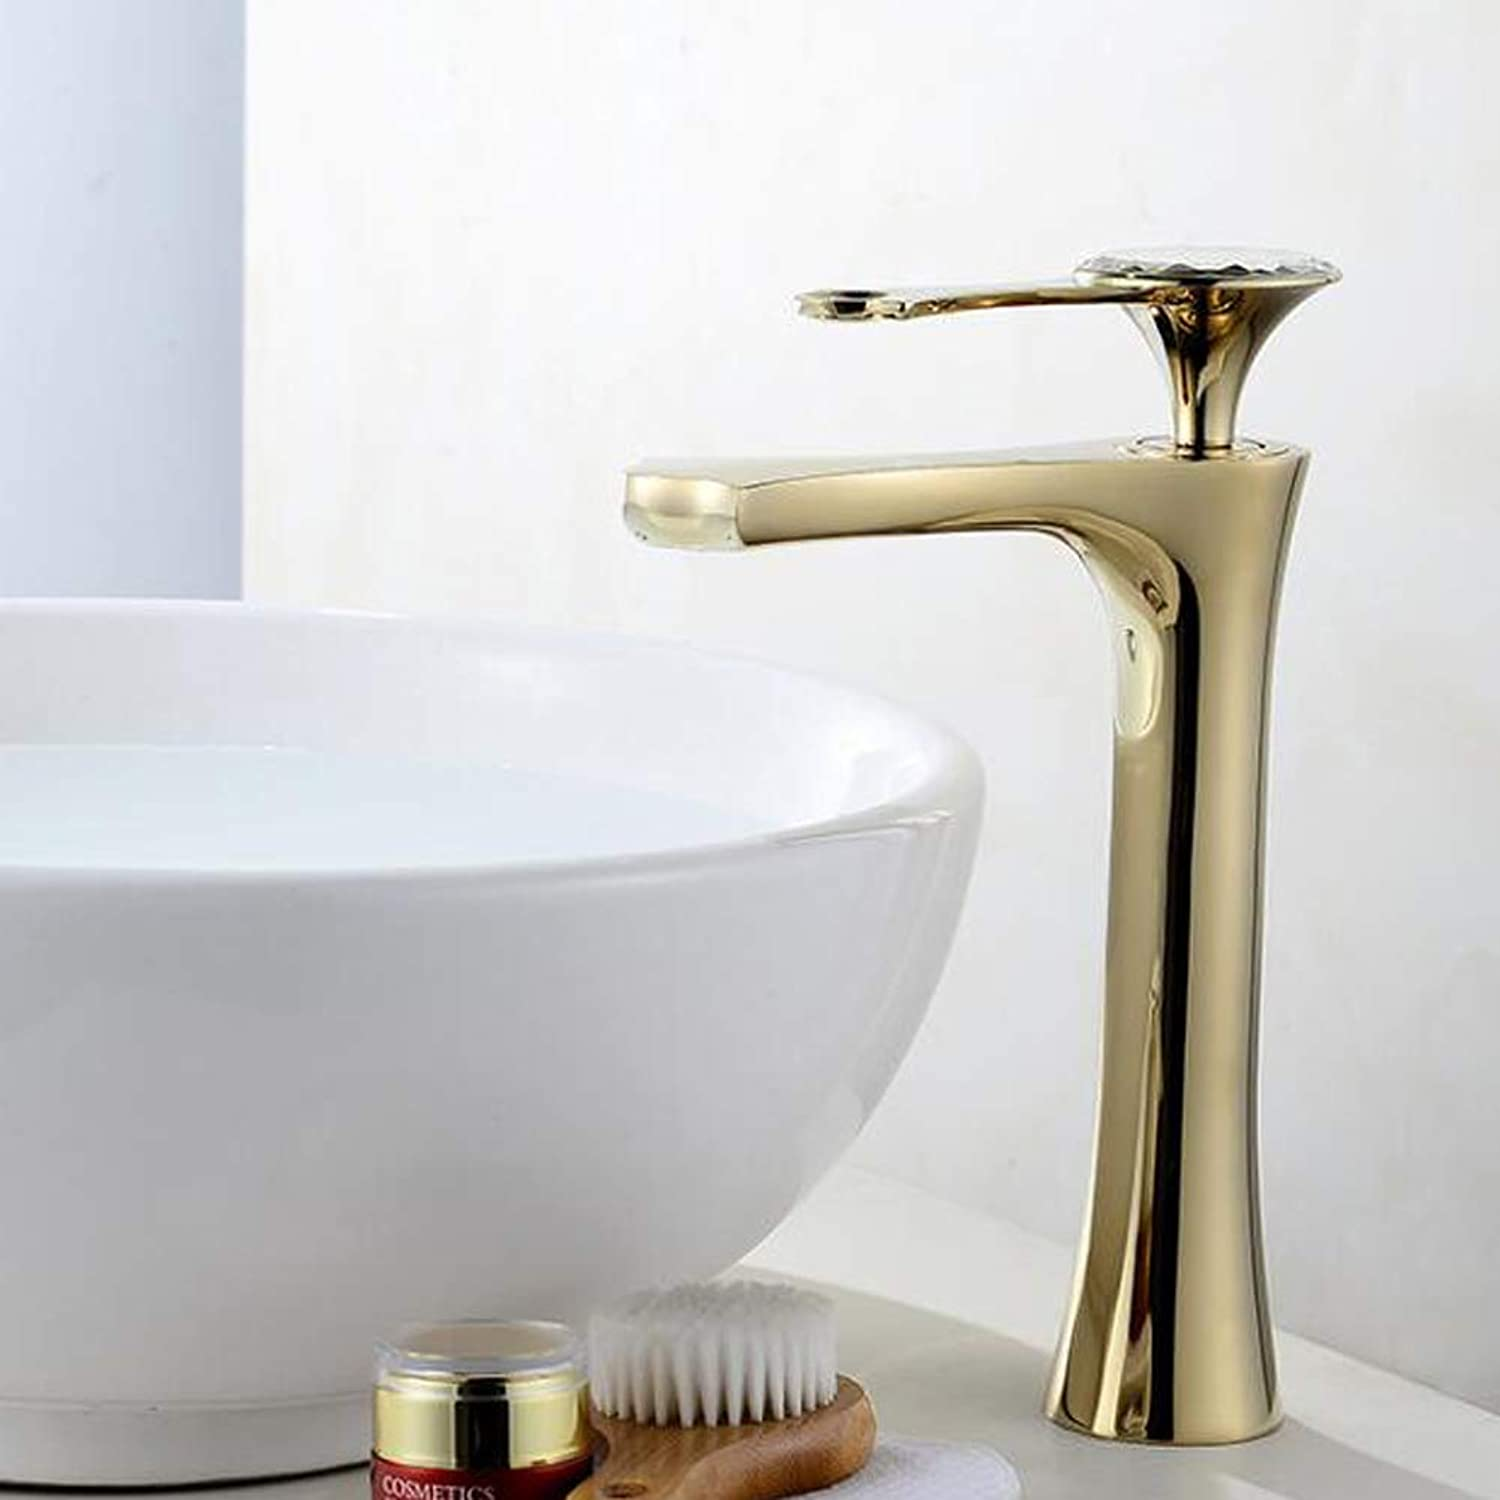 European Style gold-plated Above Counter Basin Mixer Tap all Brass Bathroom Sink Hot Cold Taps,goldFaucet